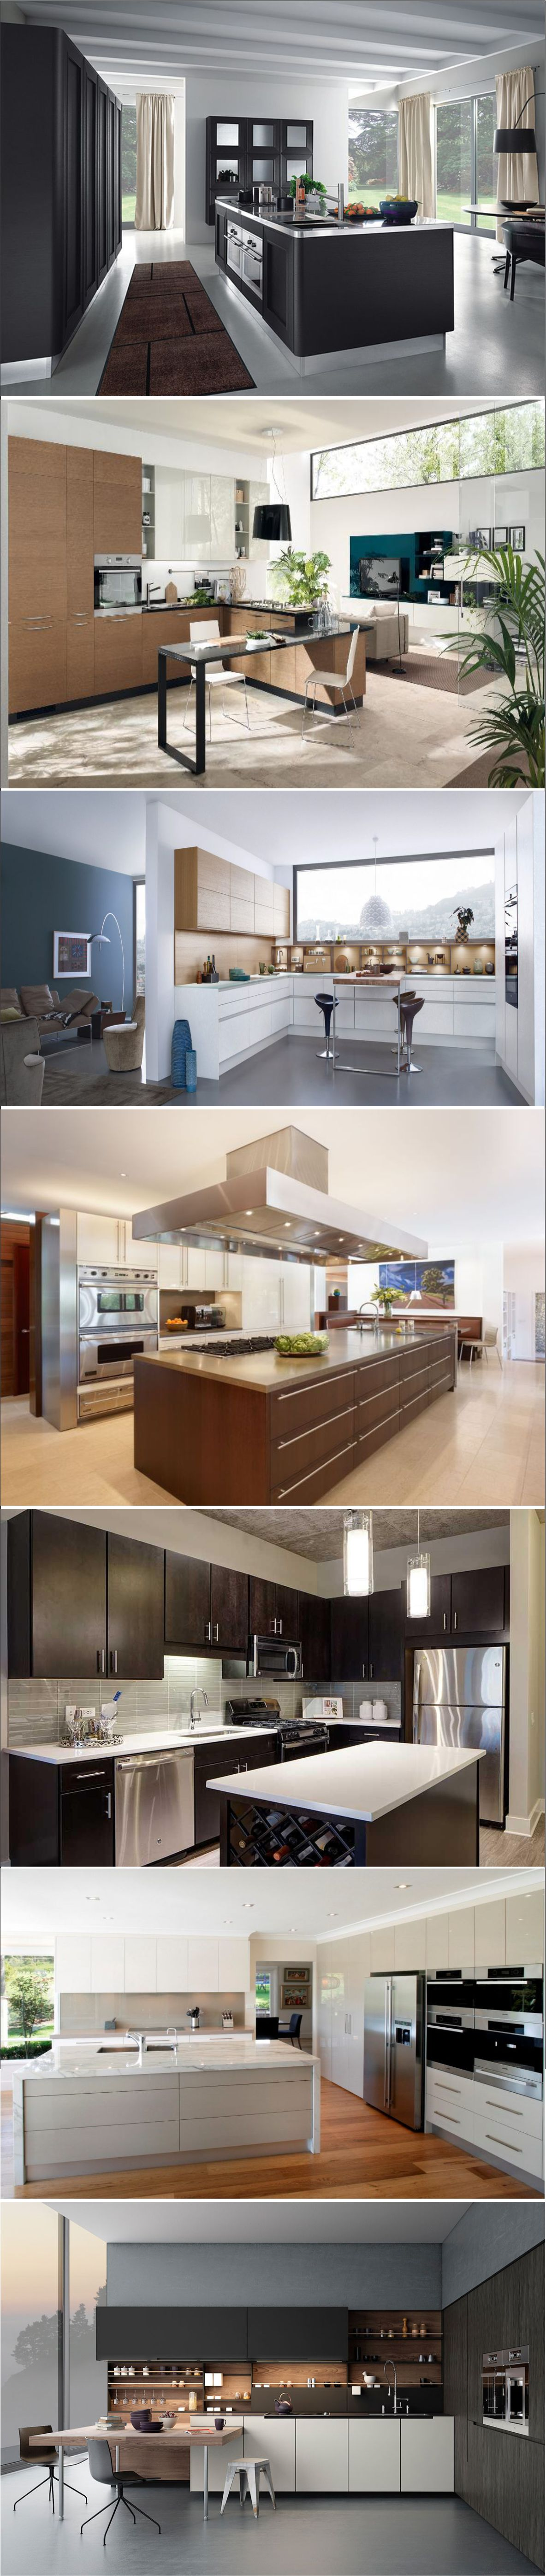 Beautiful contemporary kitchen ideas for home